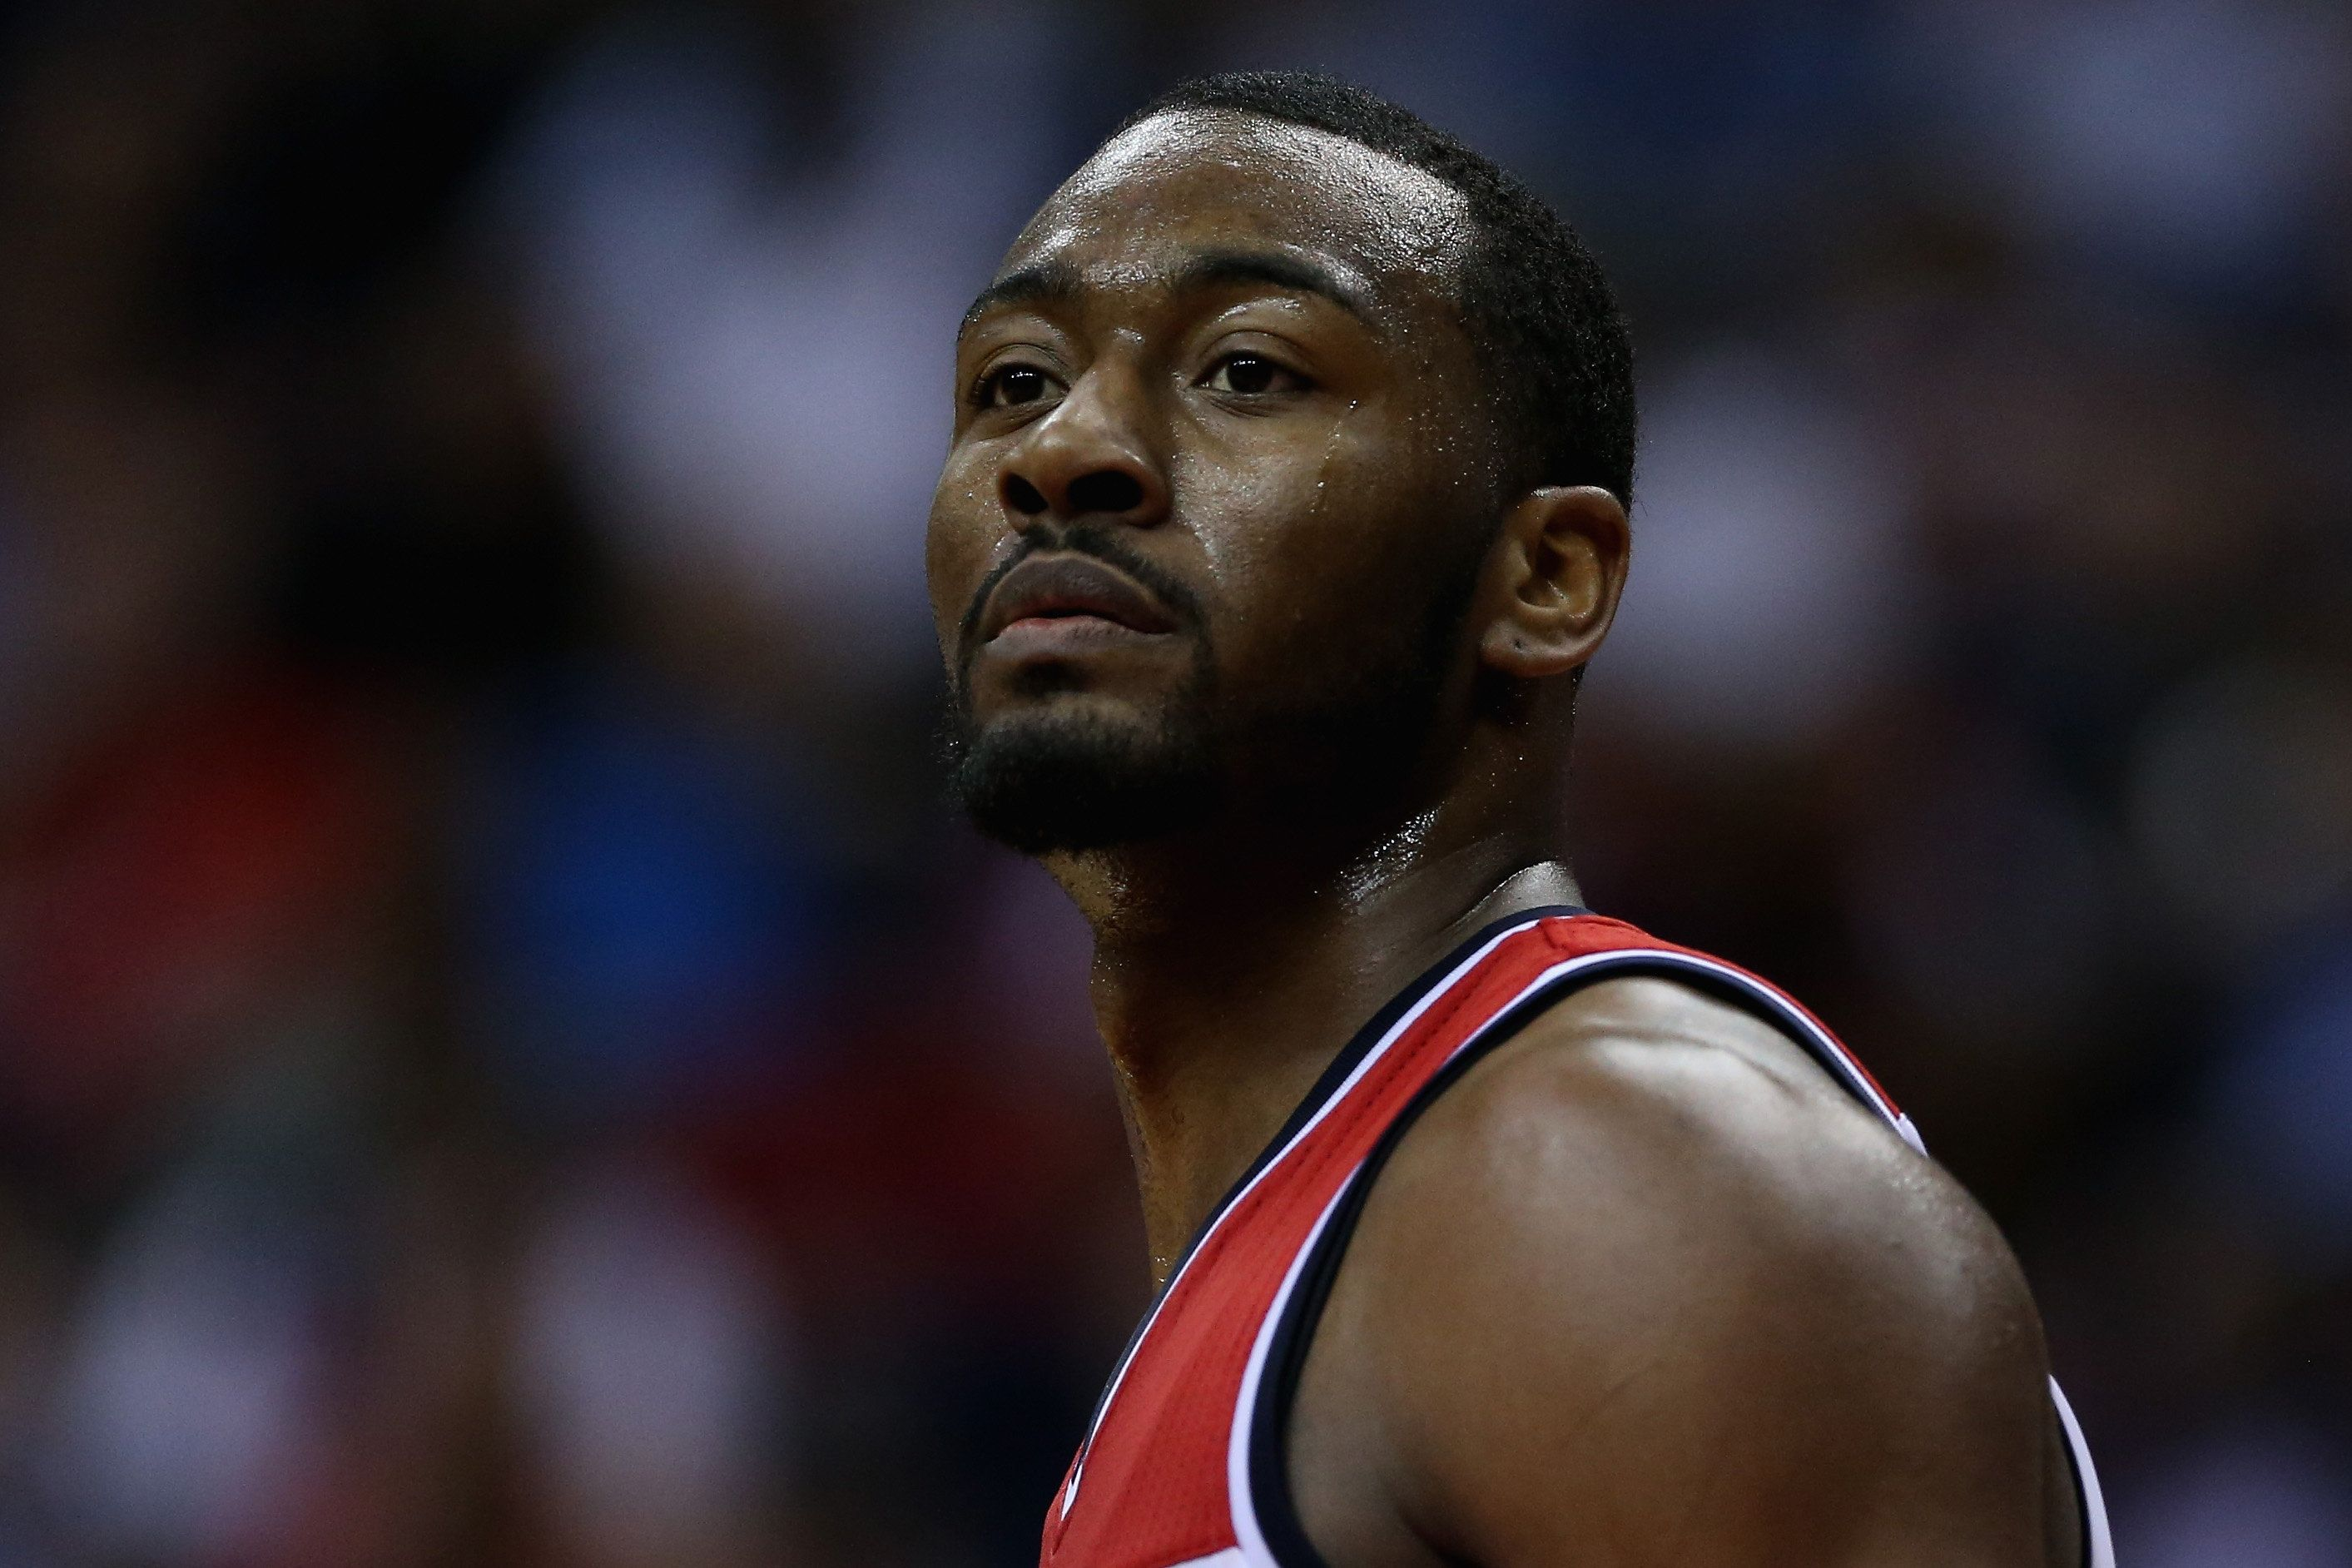 WASHINGTON, DC - MAY 15:  John Wall #2 of the Washington Wizards looks on during the second quarter against the Atlanta Hawks at Verizon Center on May 15, 2015 in Washington, DC.  (Photo by Maddie Meyer/Getty Images)